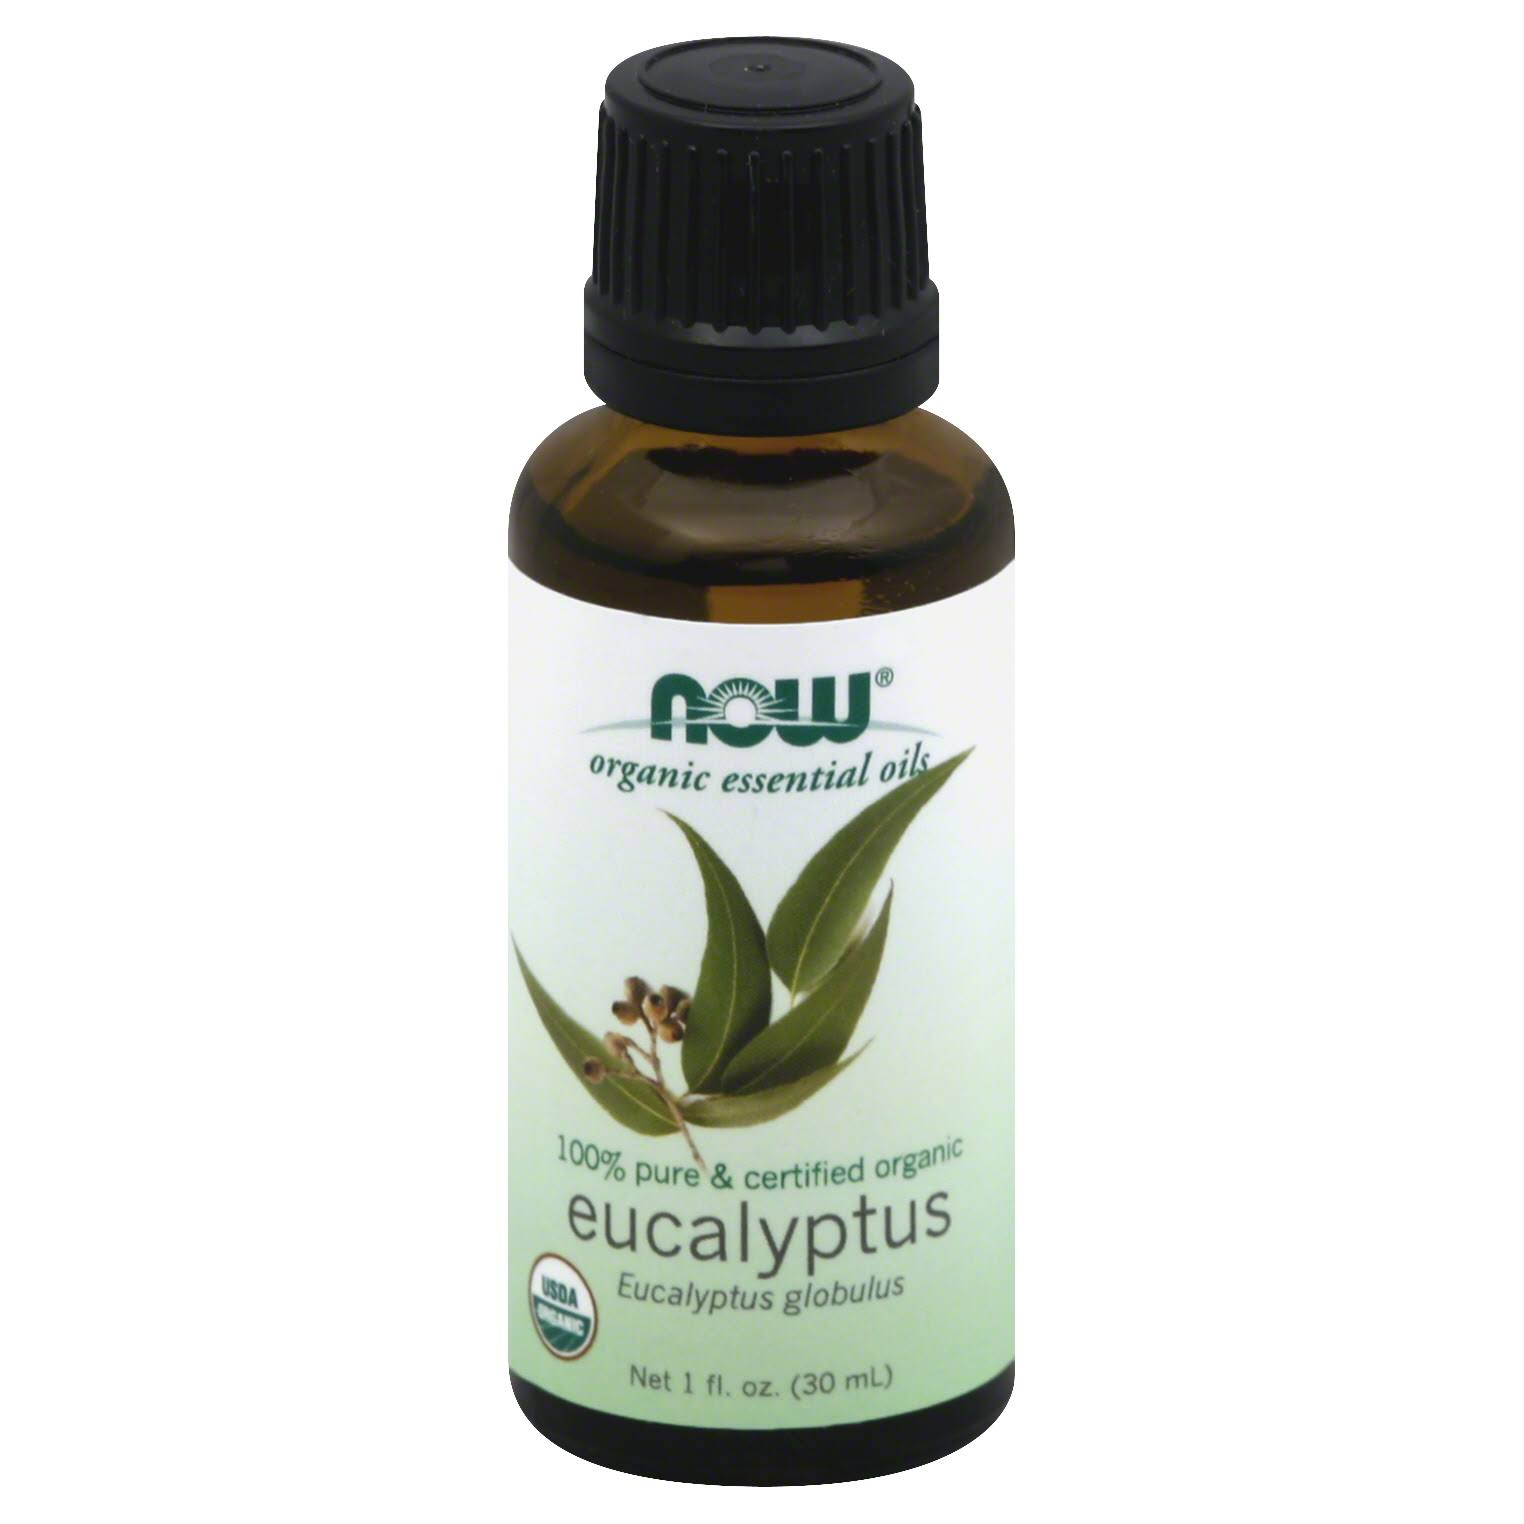 Now Organic Essential Oils - Eucalyptus, 30ml